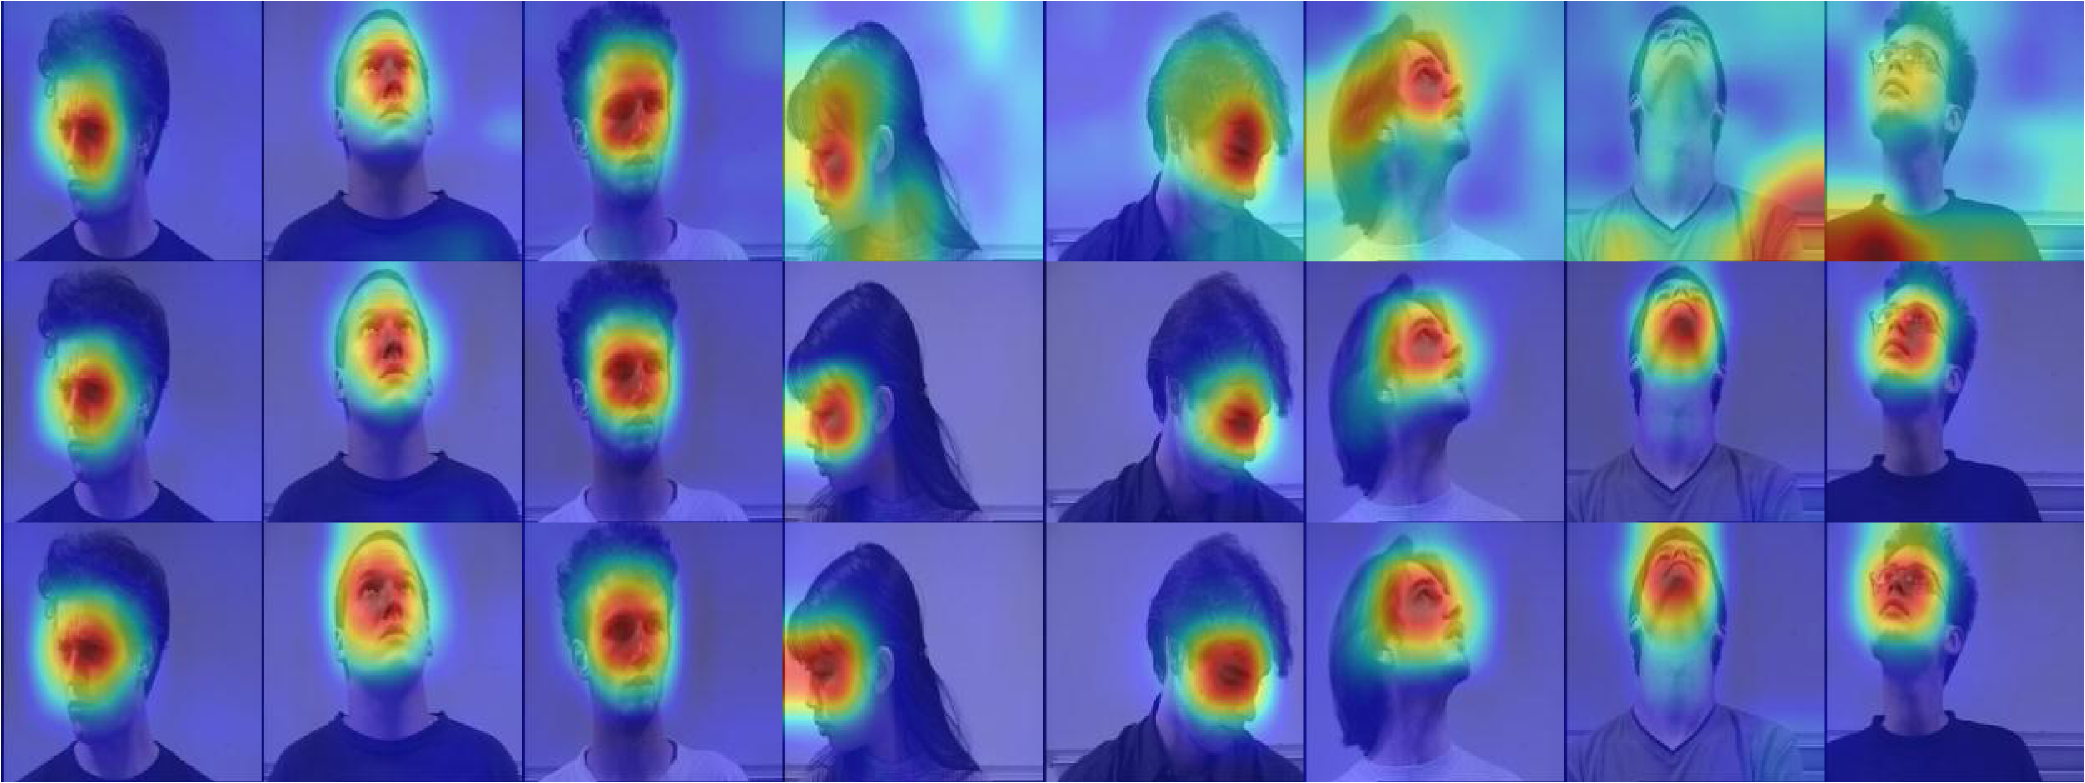 Head pose estimation using deep multitask learning